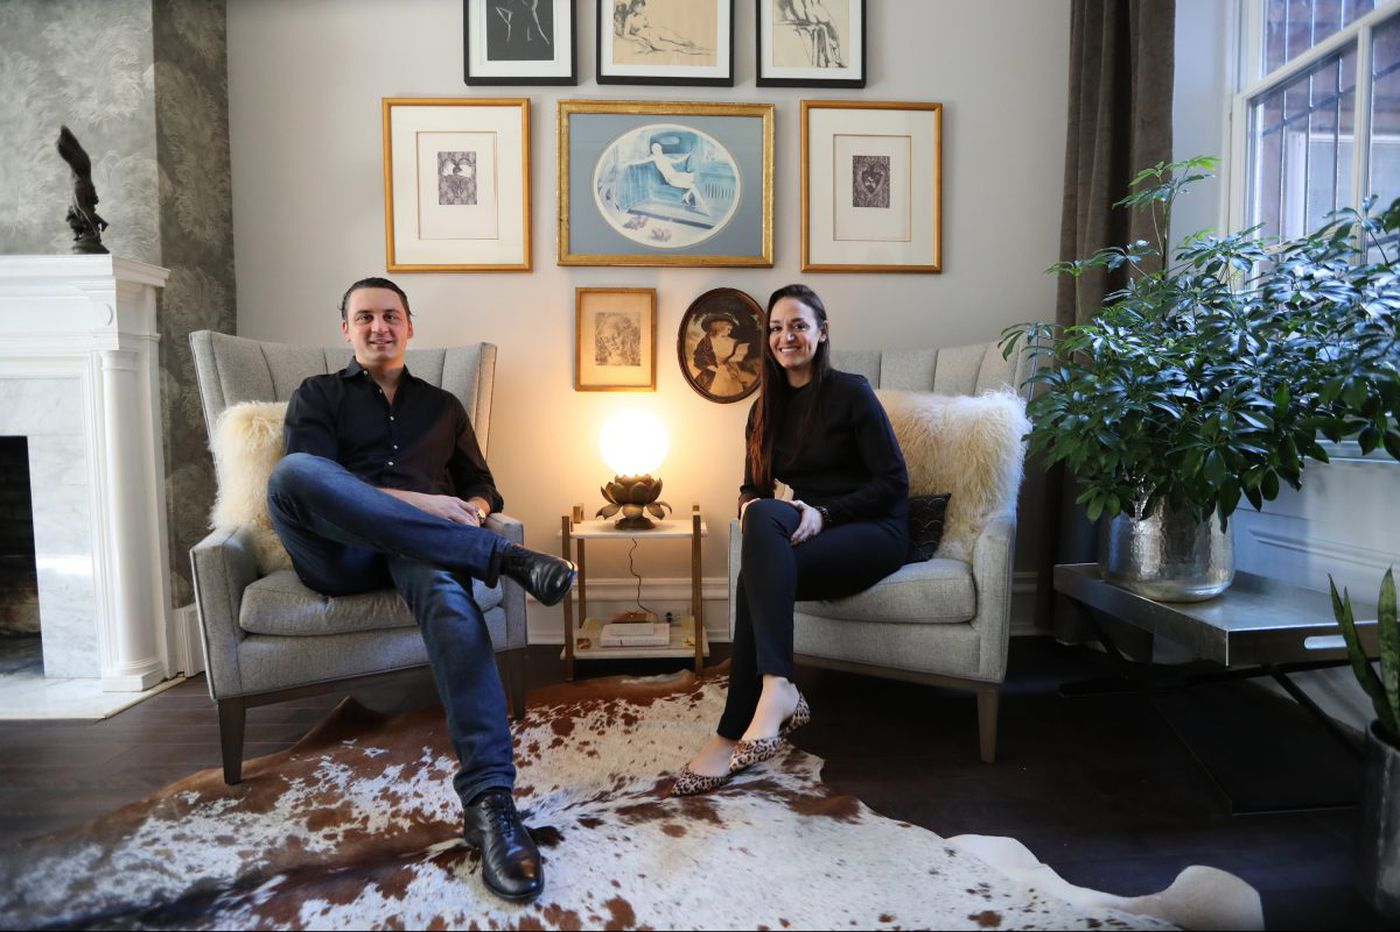 How a job prospect led to a home near Rittenhouse Square